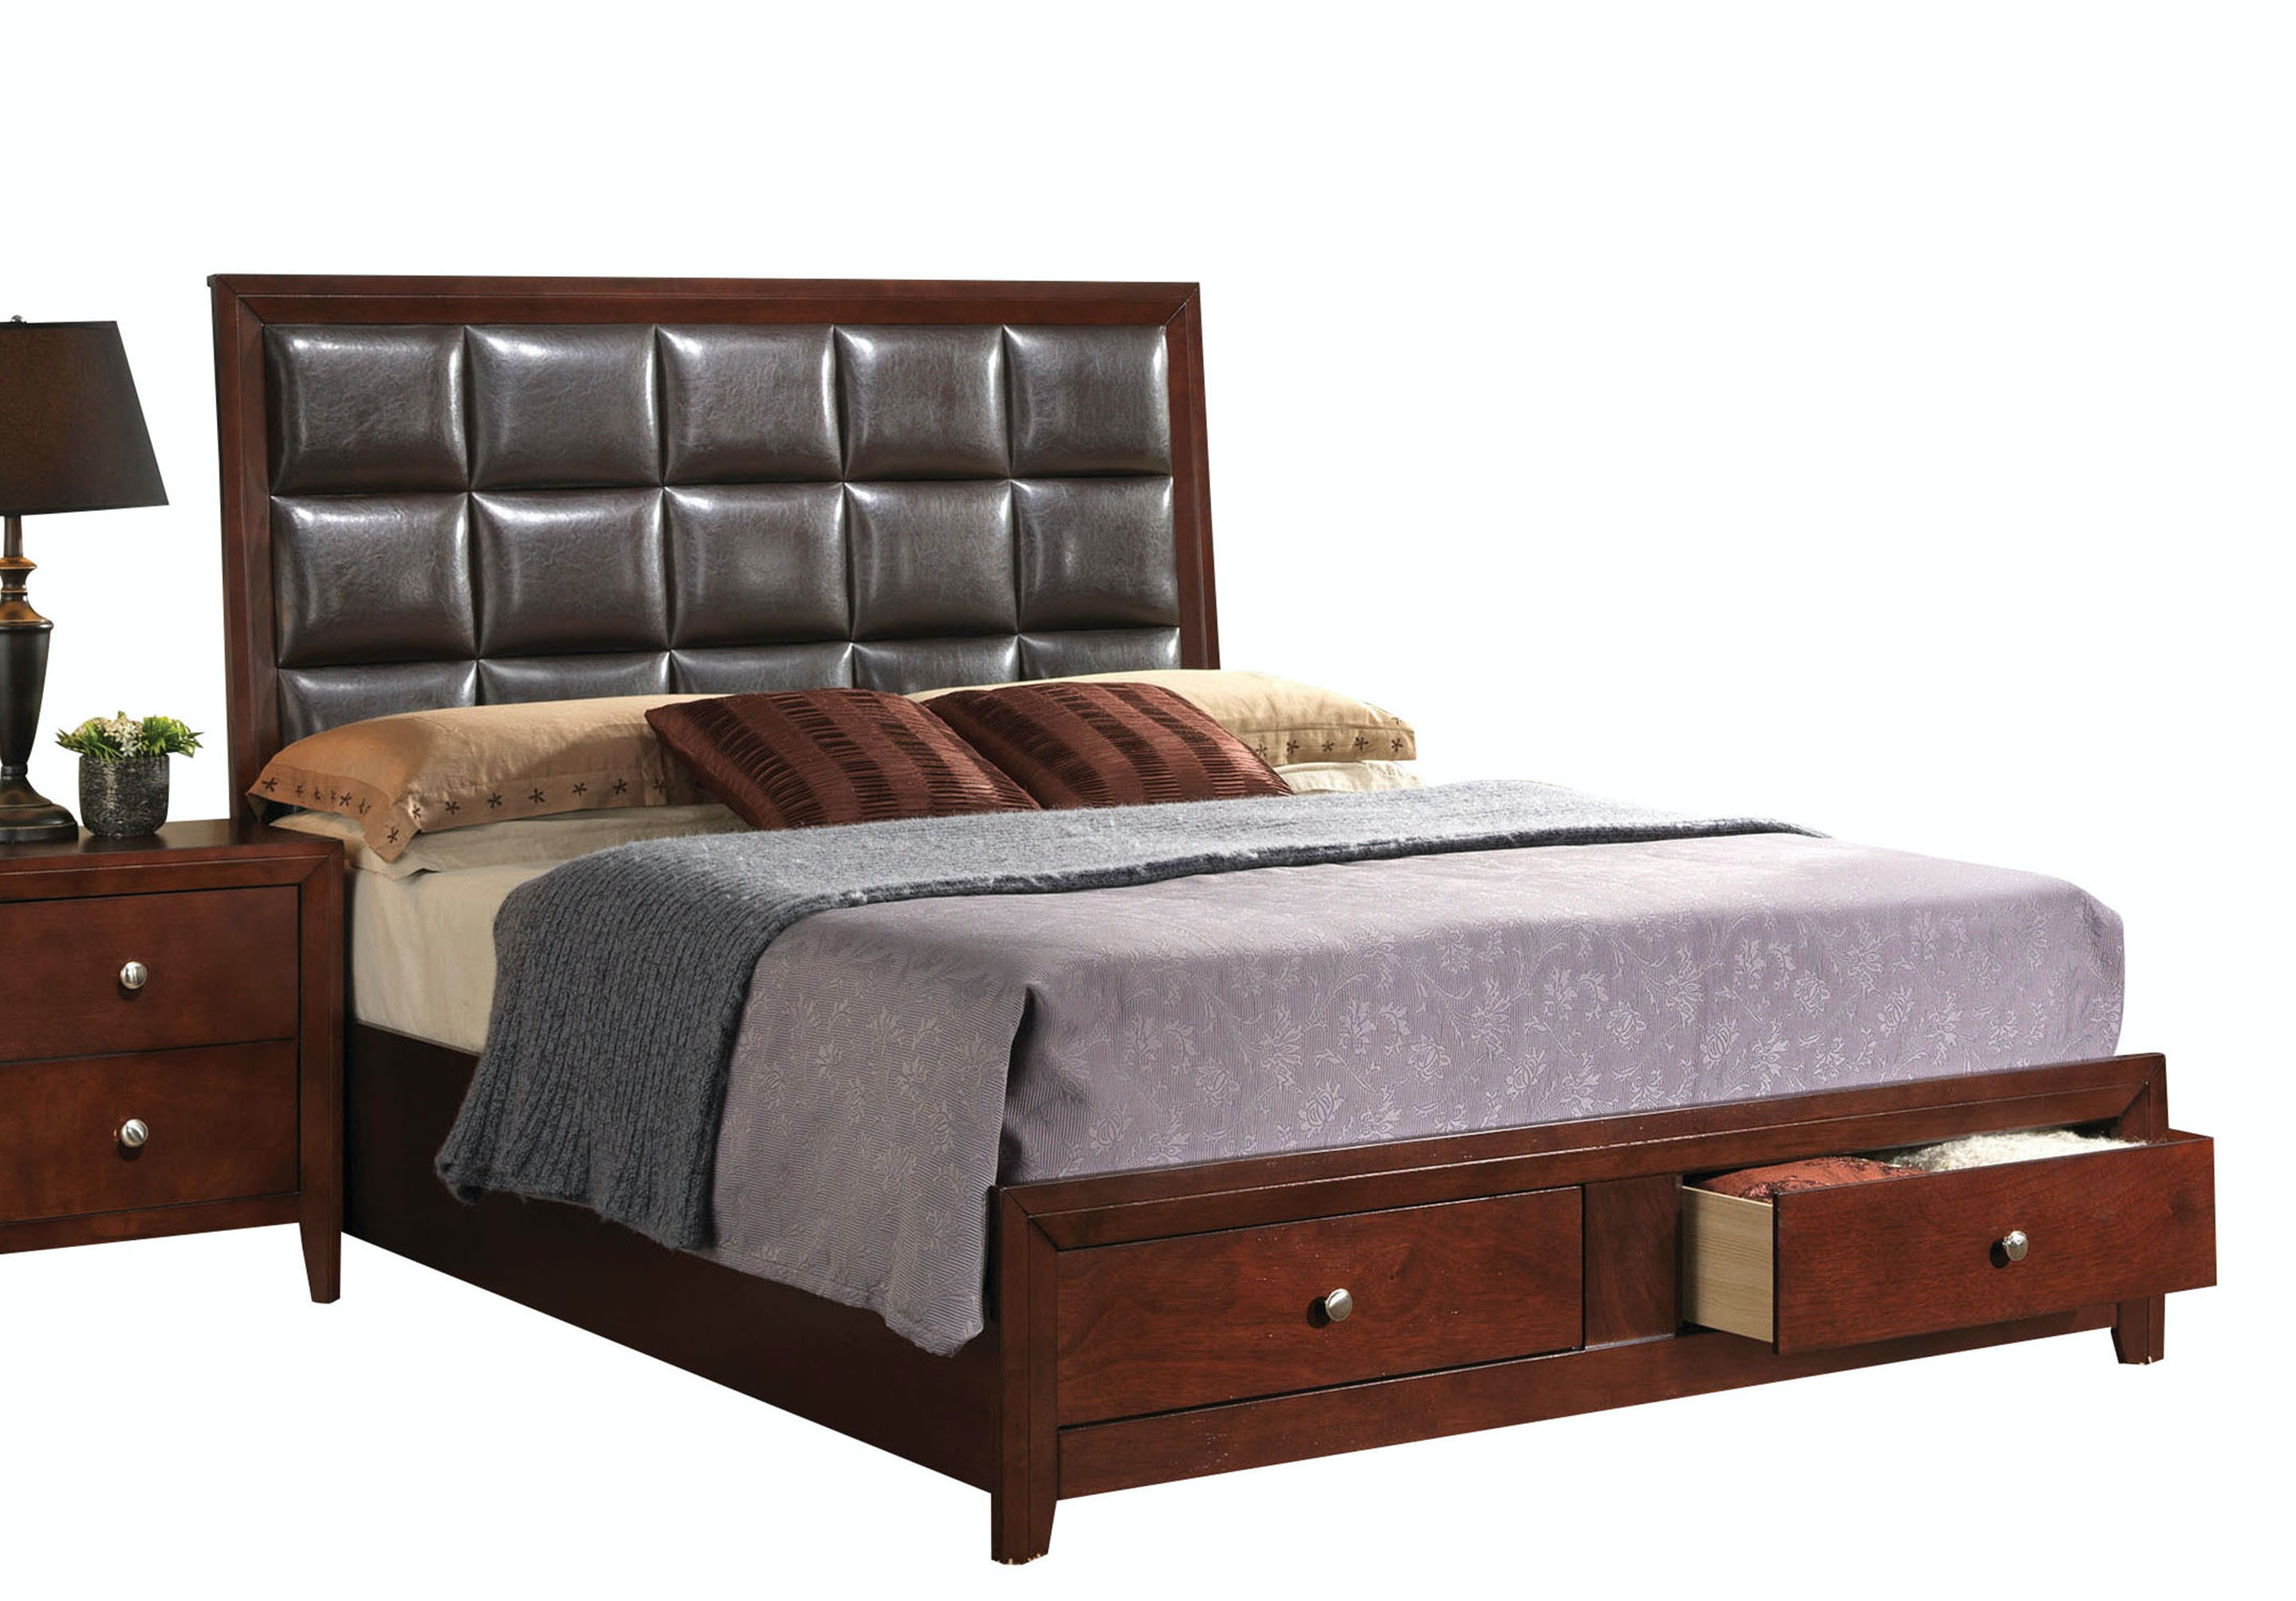 Acme Furniture Ilana Queen Bed with Storage